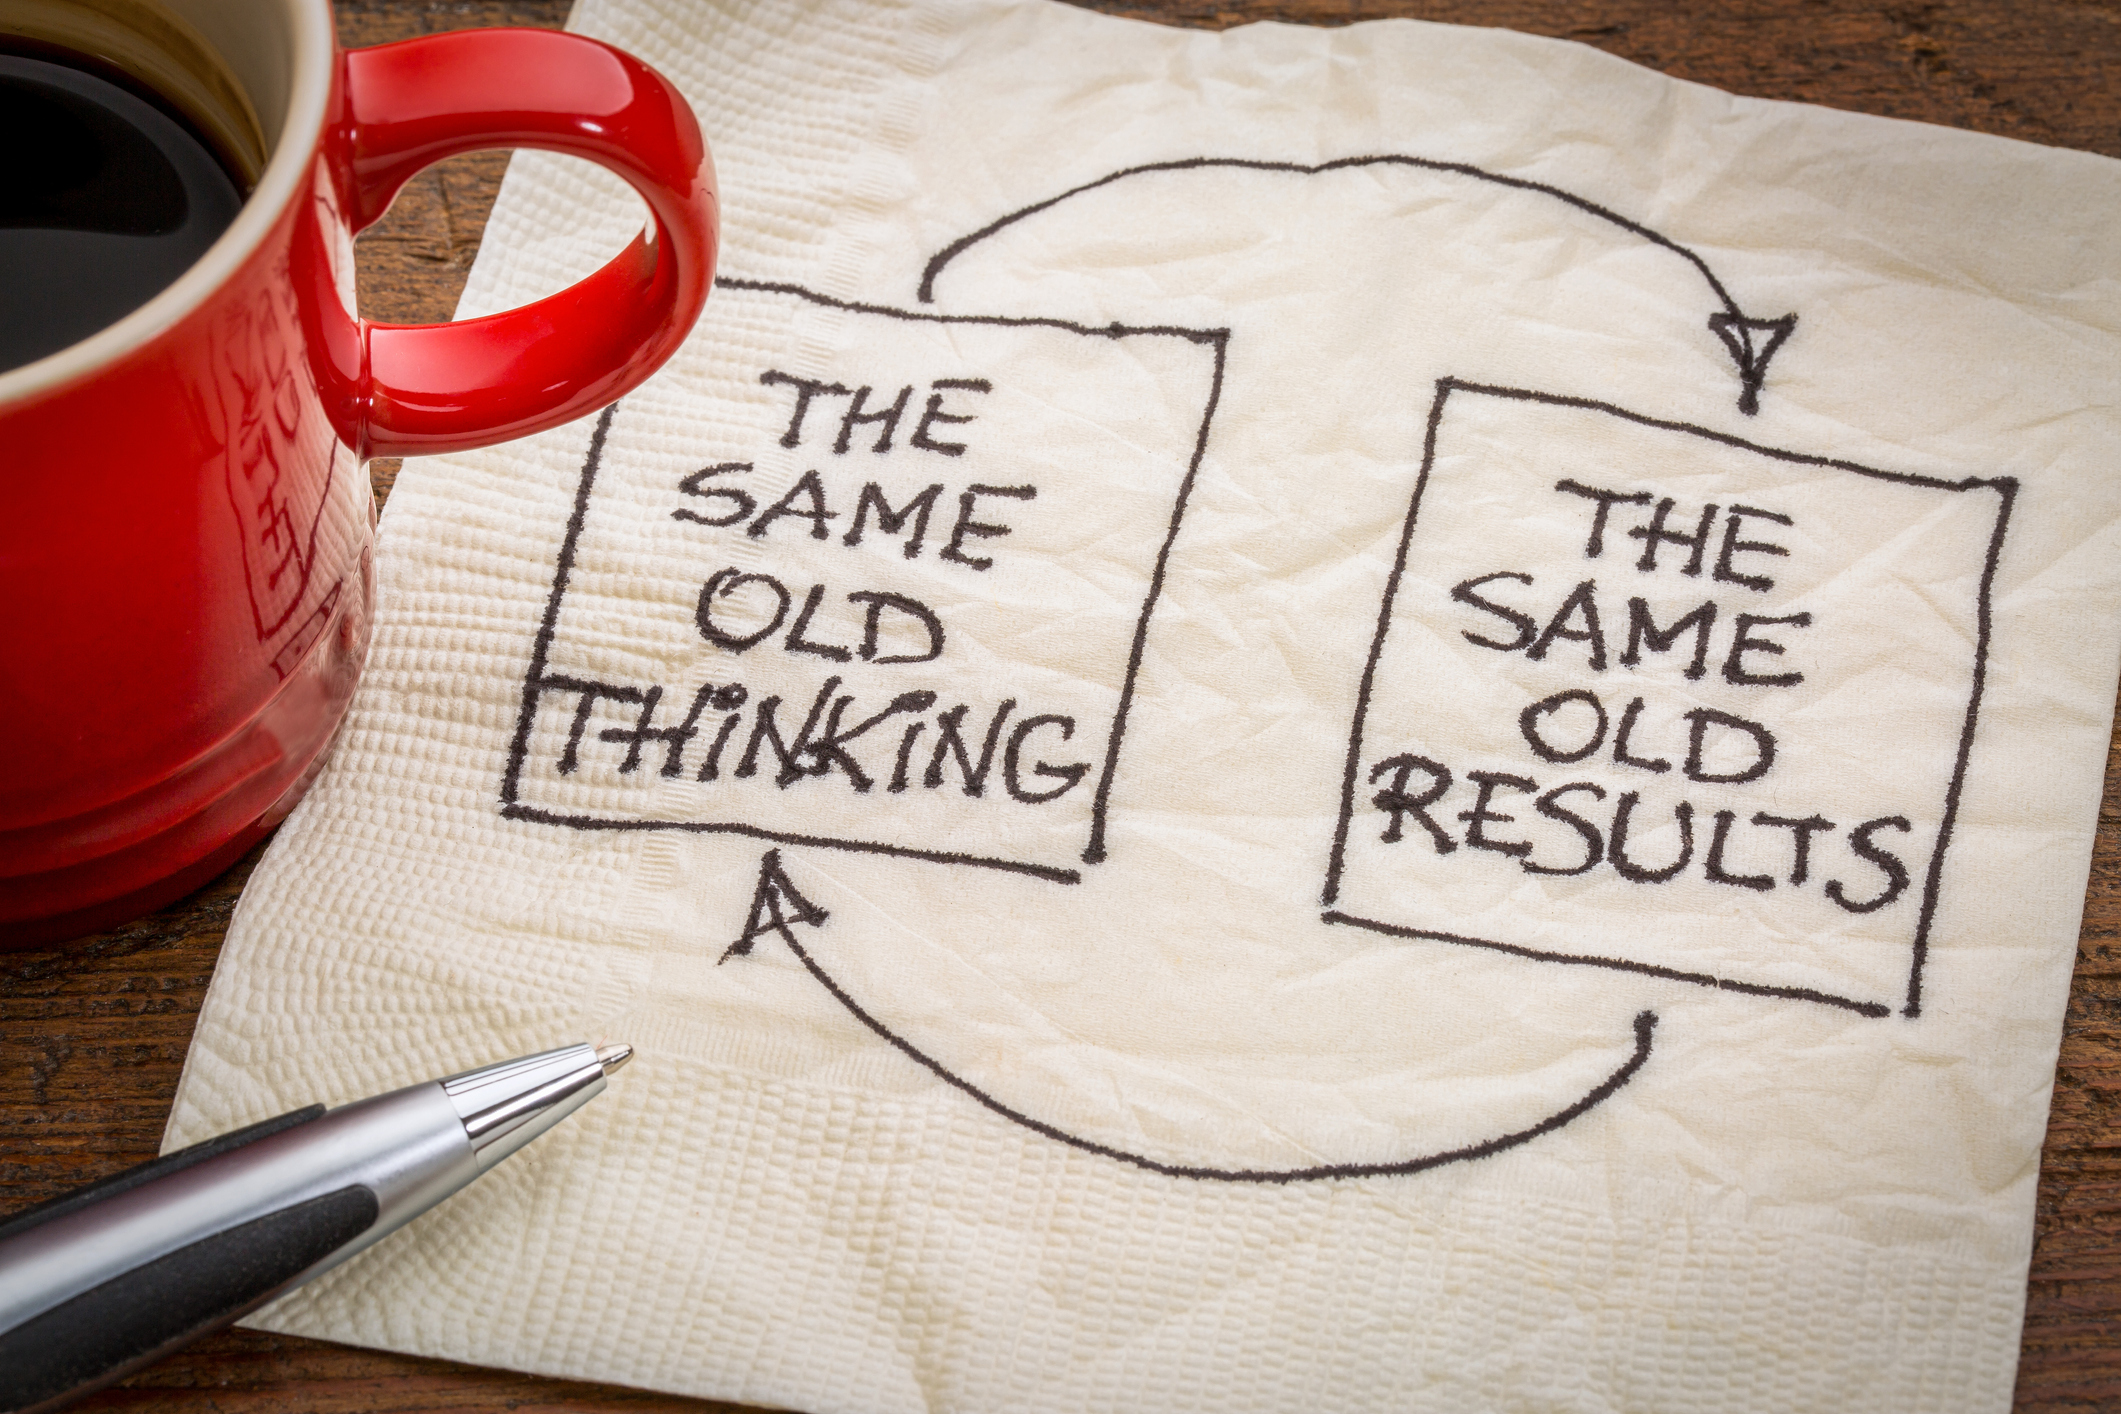 picture of a napkin with same old thinking equals same old results written on it